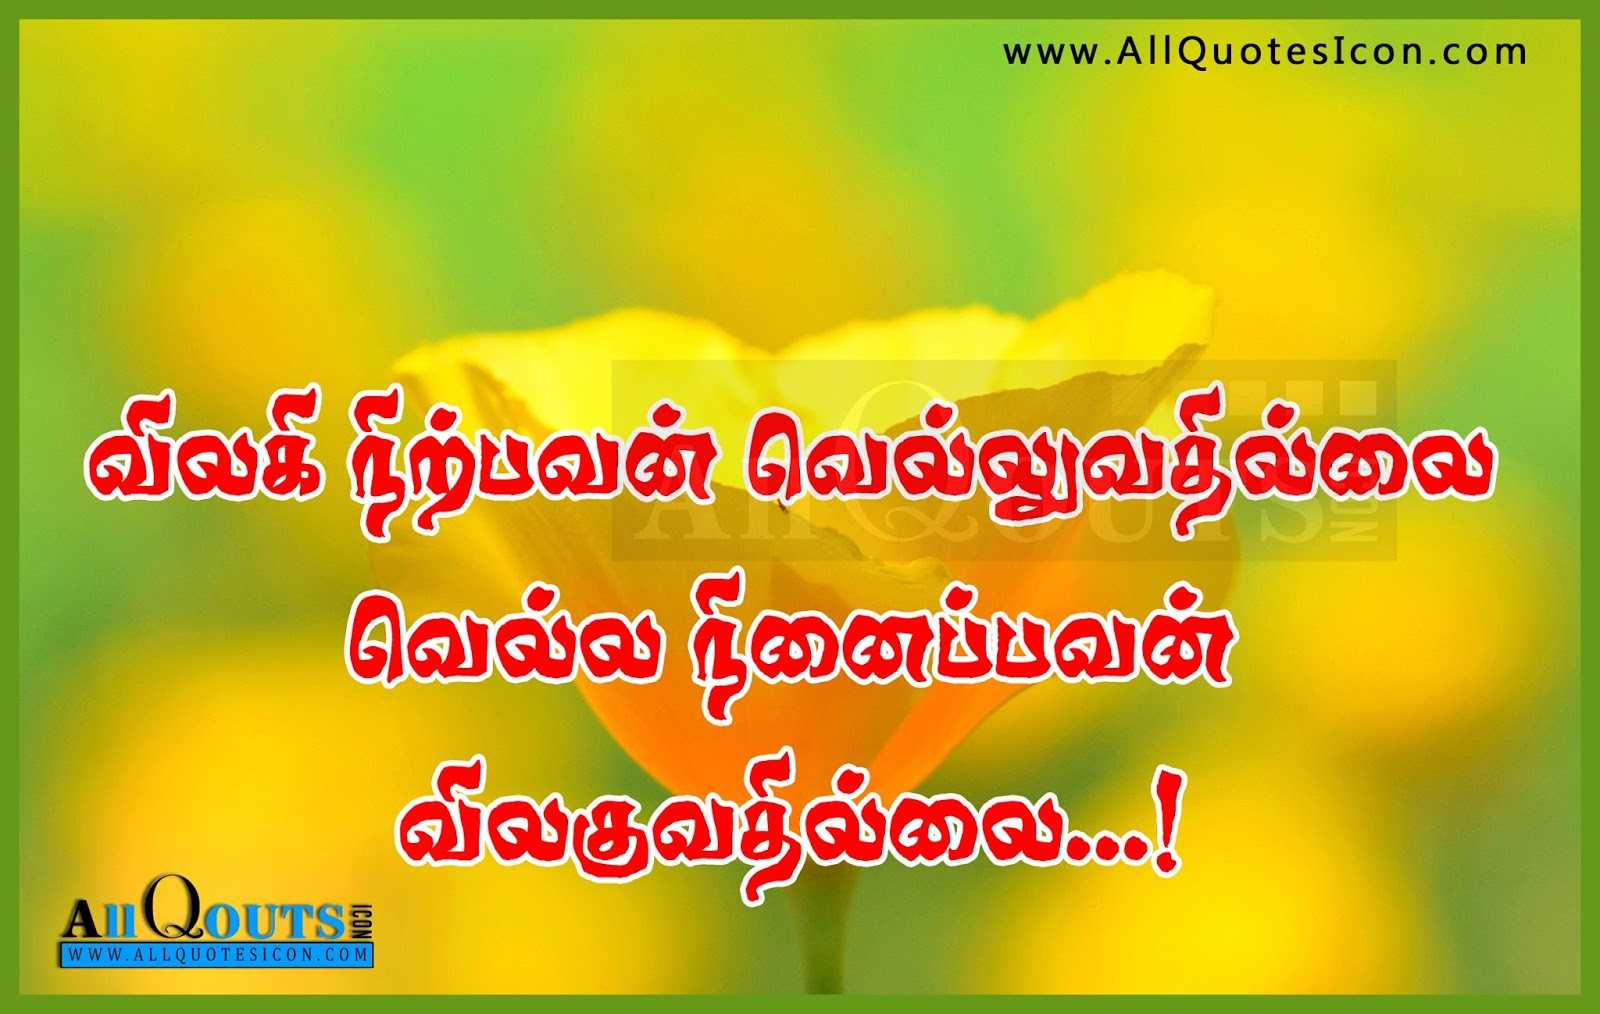 best inspiration thughts and sayings in tamil www